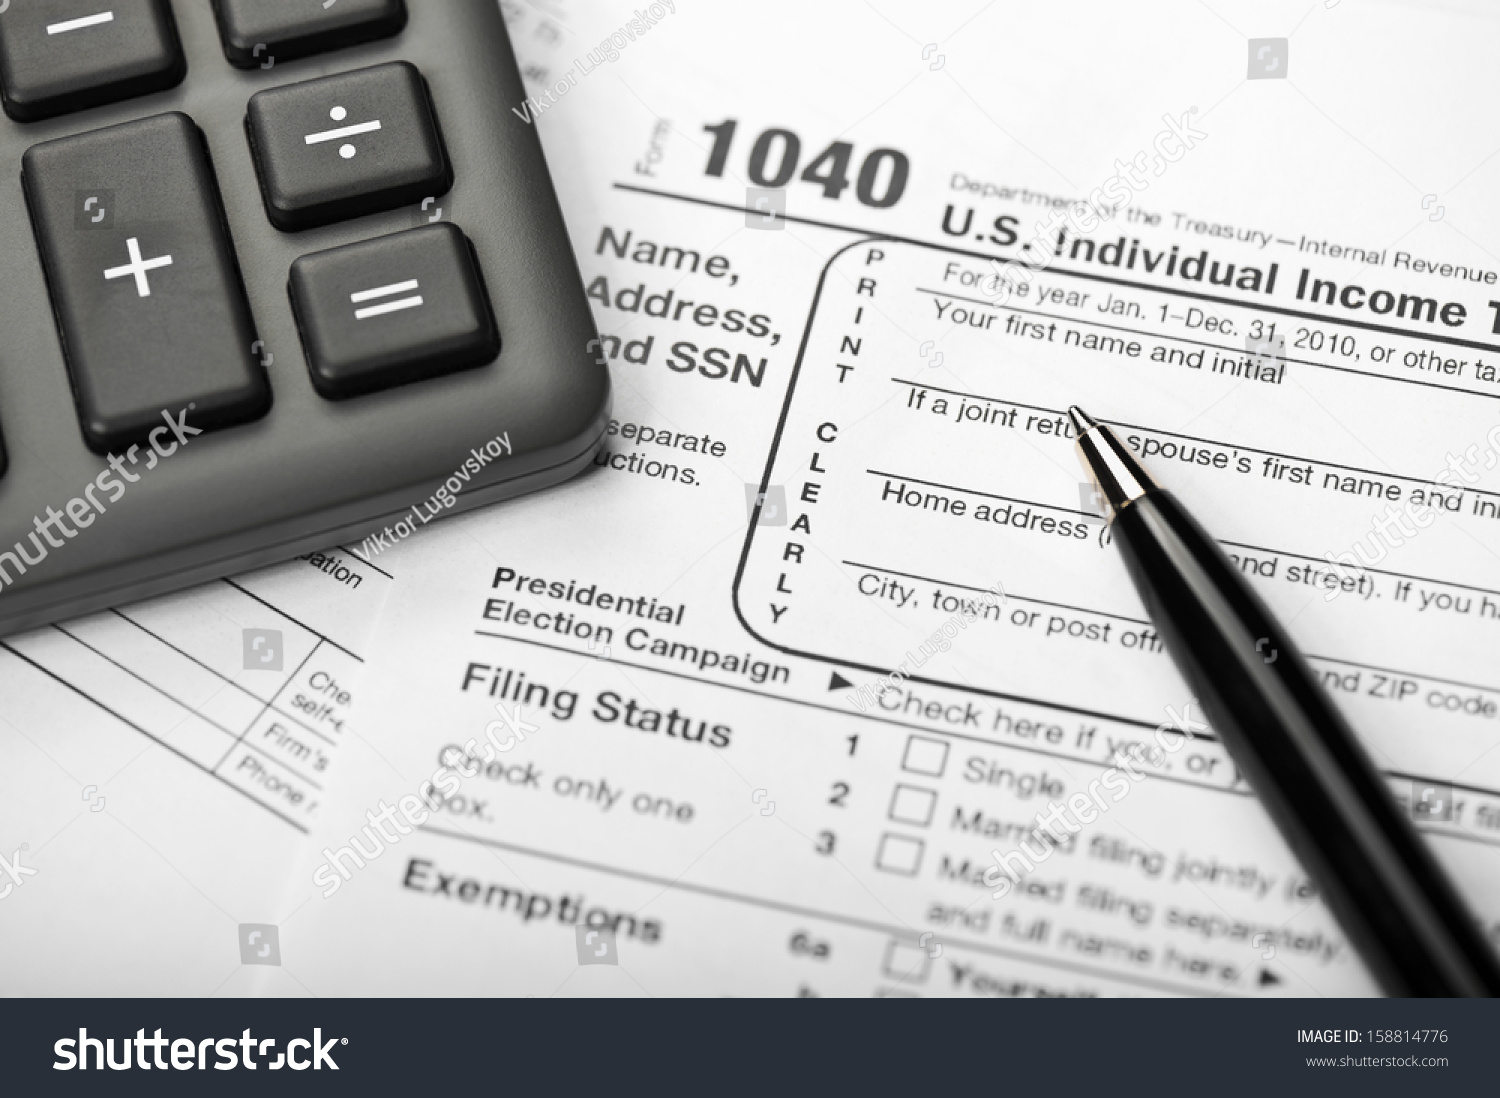 2018 form 1040 es payment voucher fresh 2014 estimated tax.